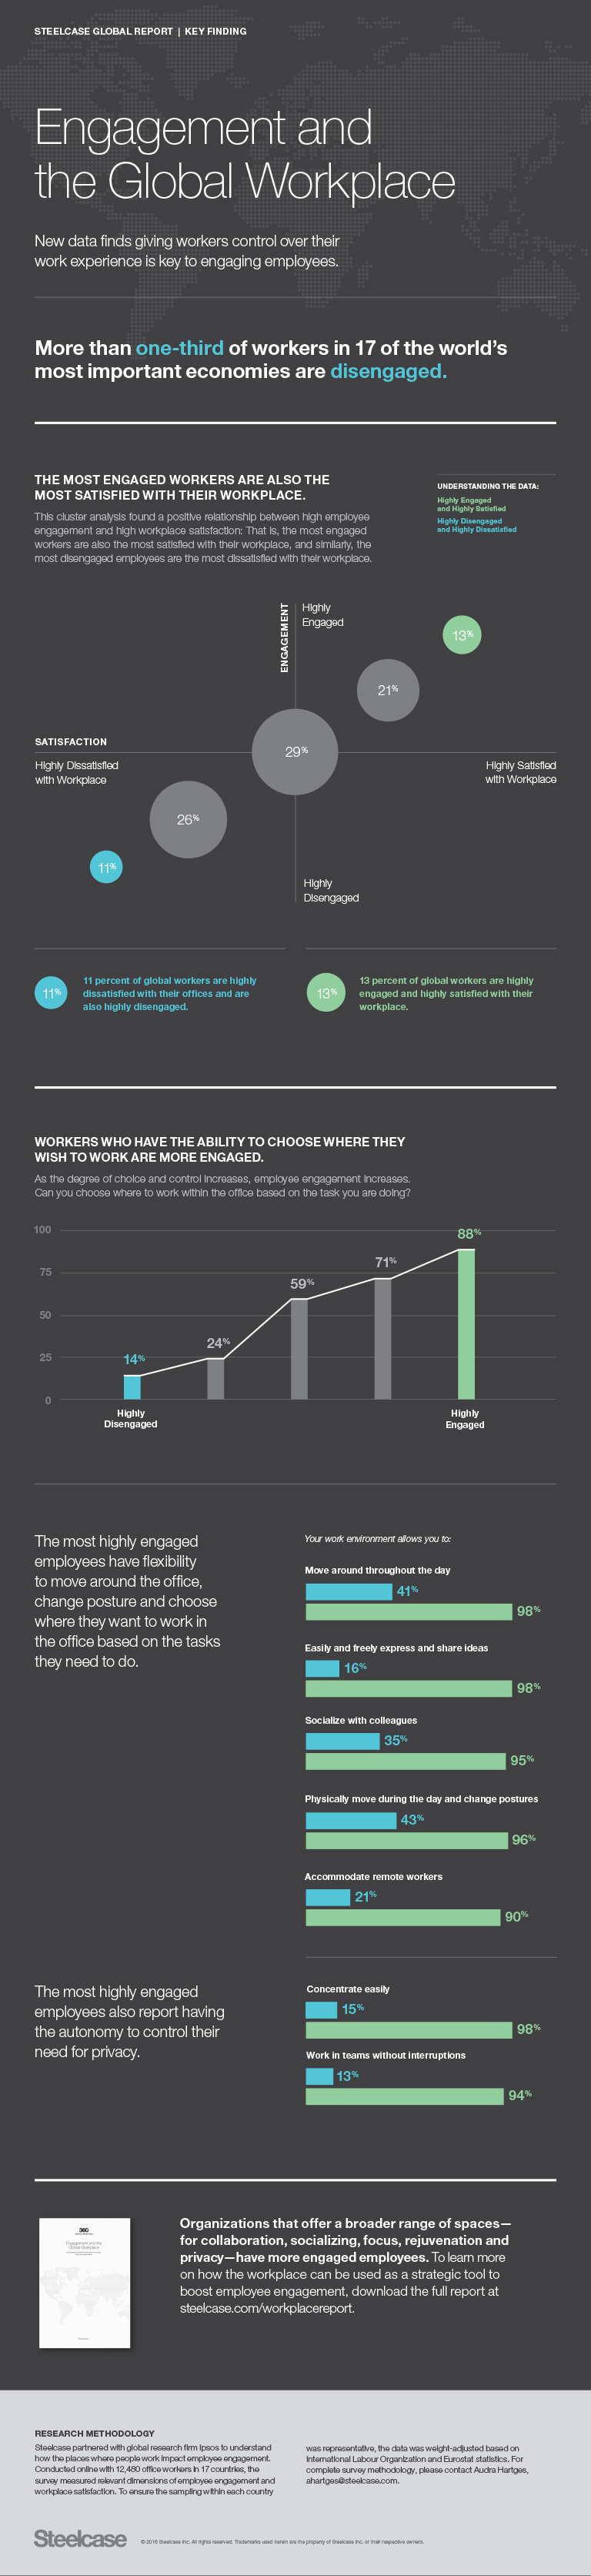 Steelcase infographic engagement and the global workplace